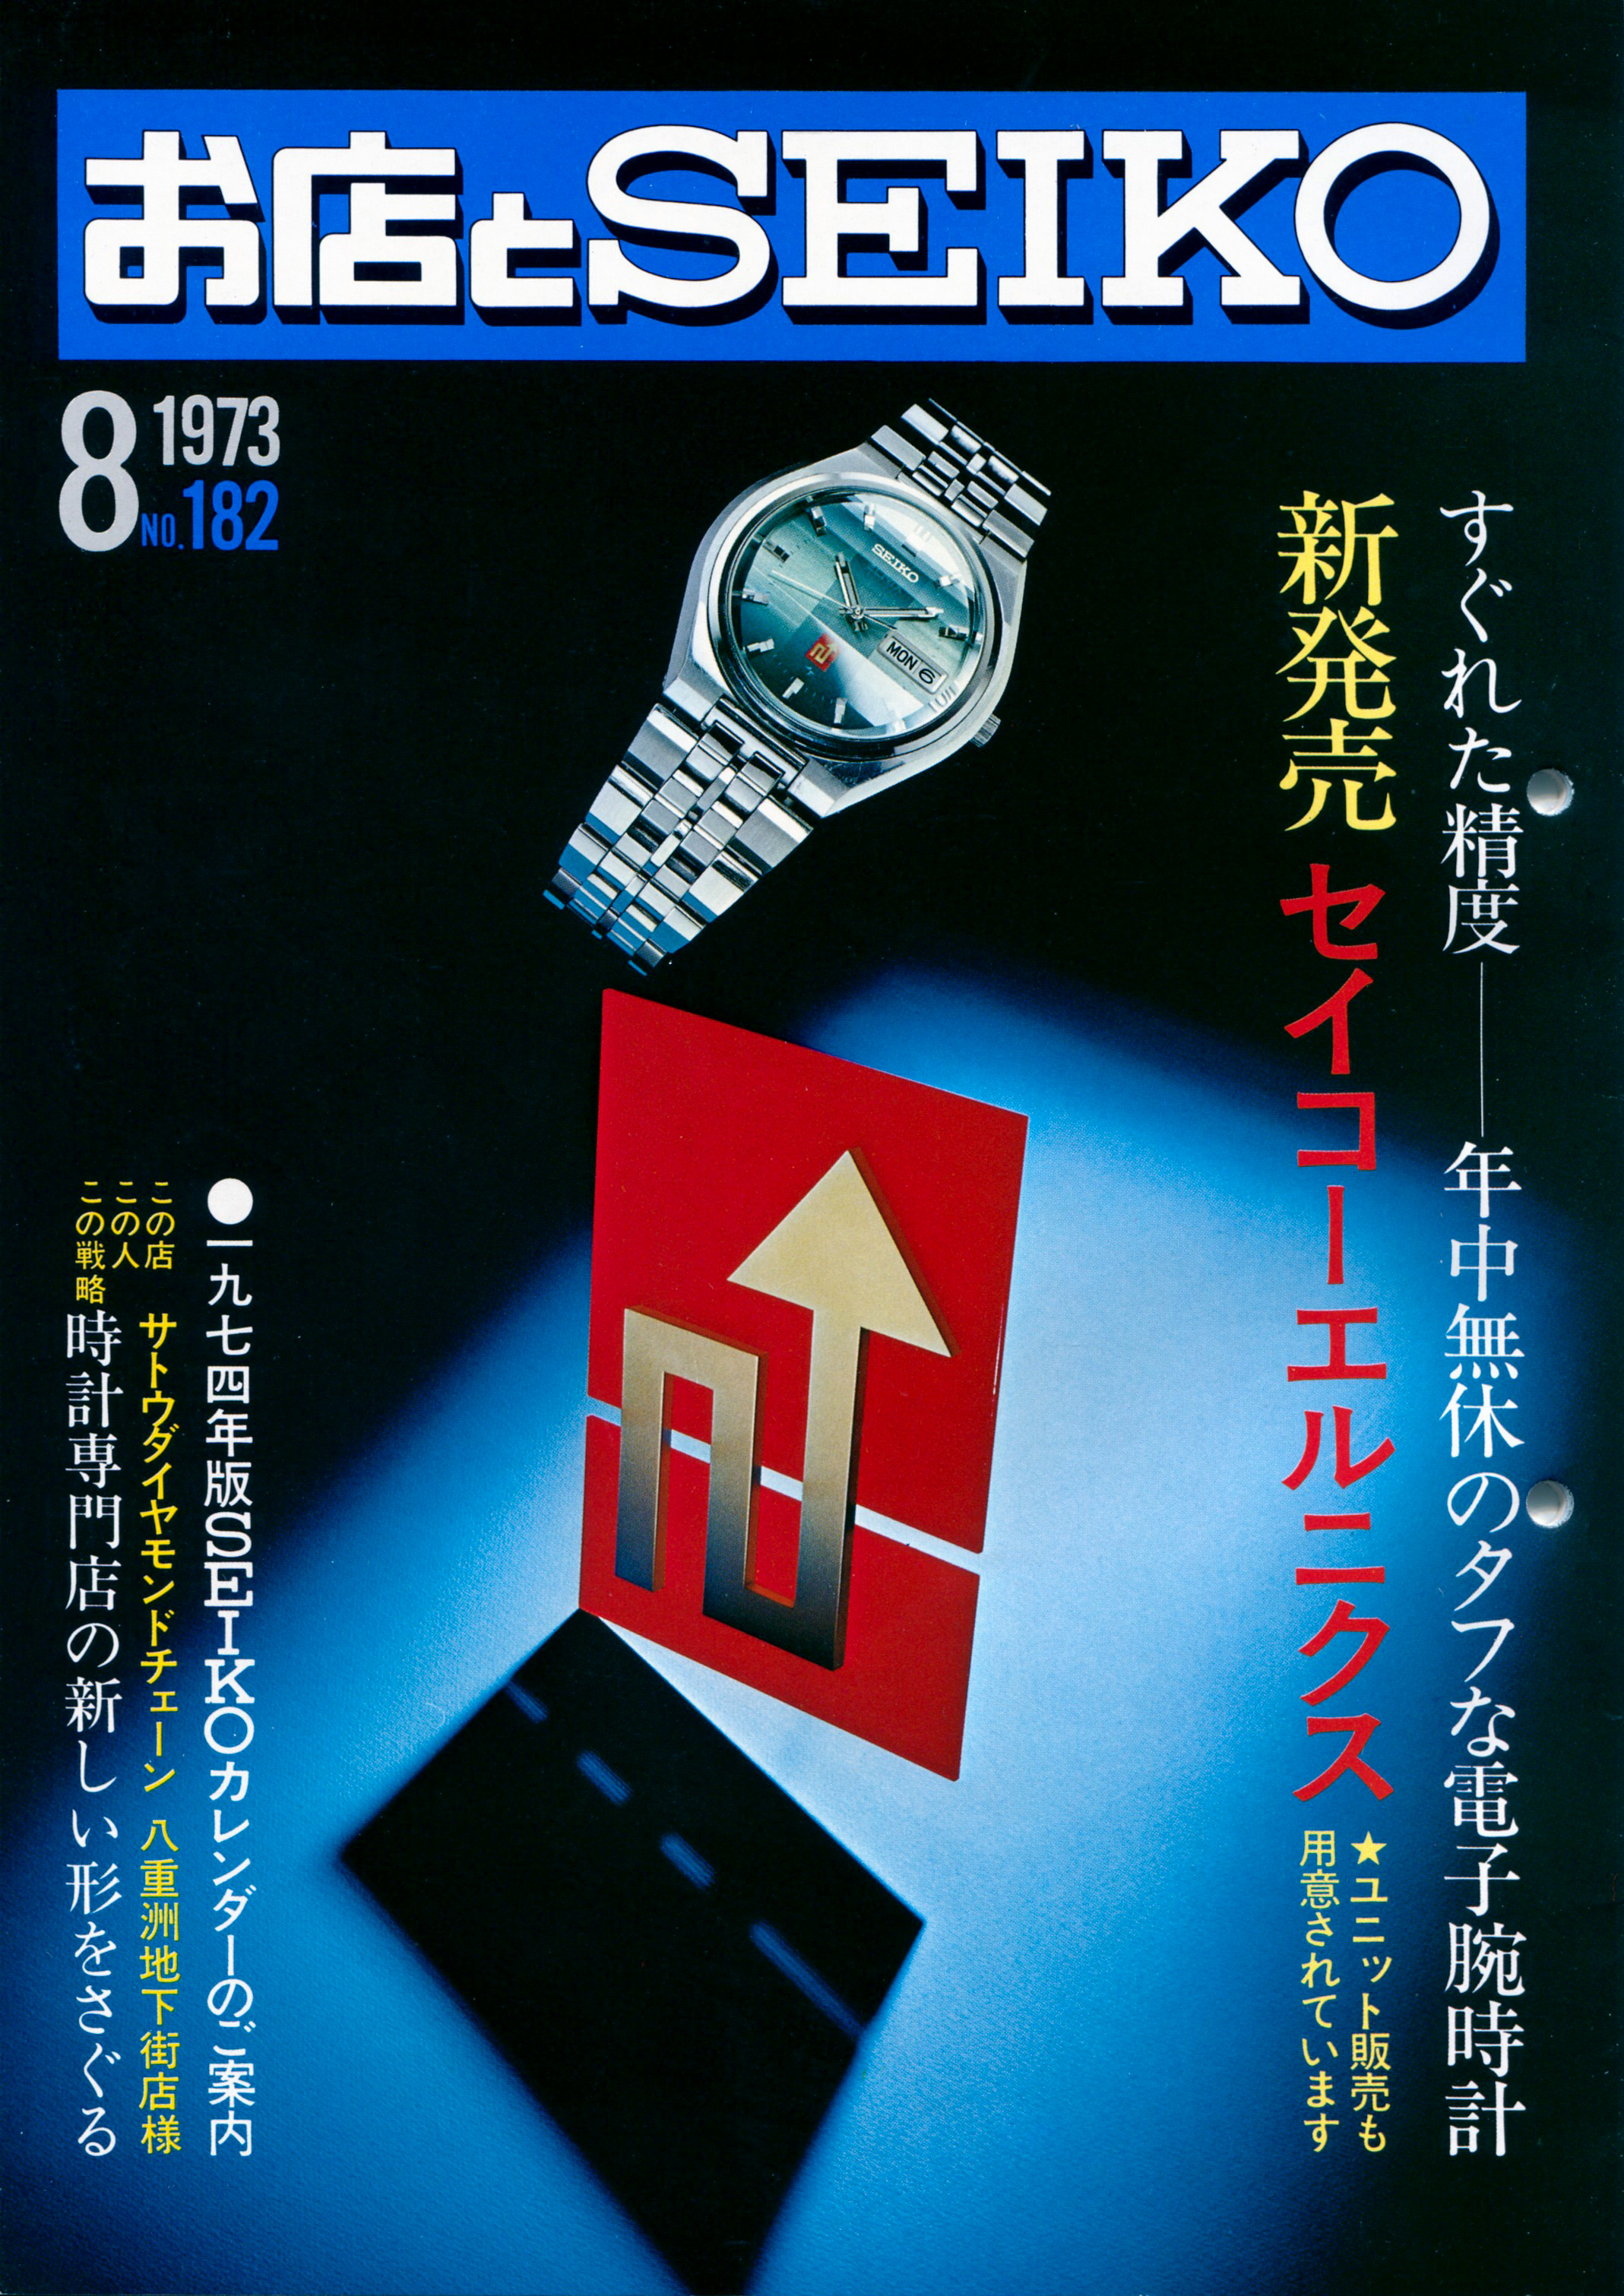 Seiko News 1973-8 No. 182